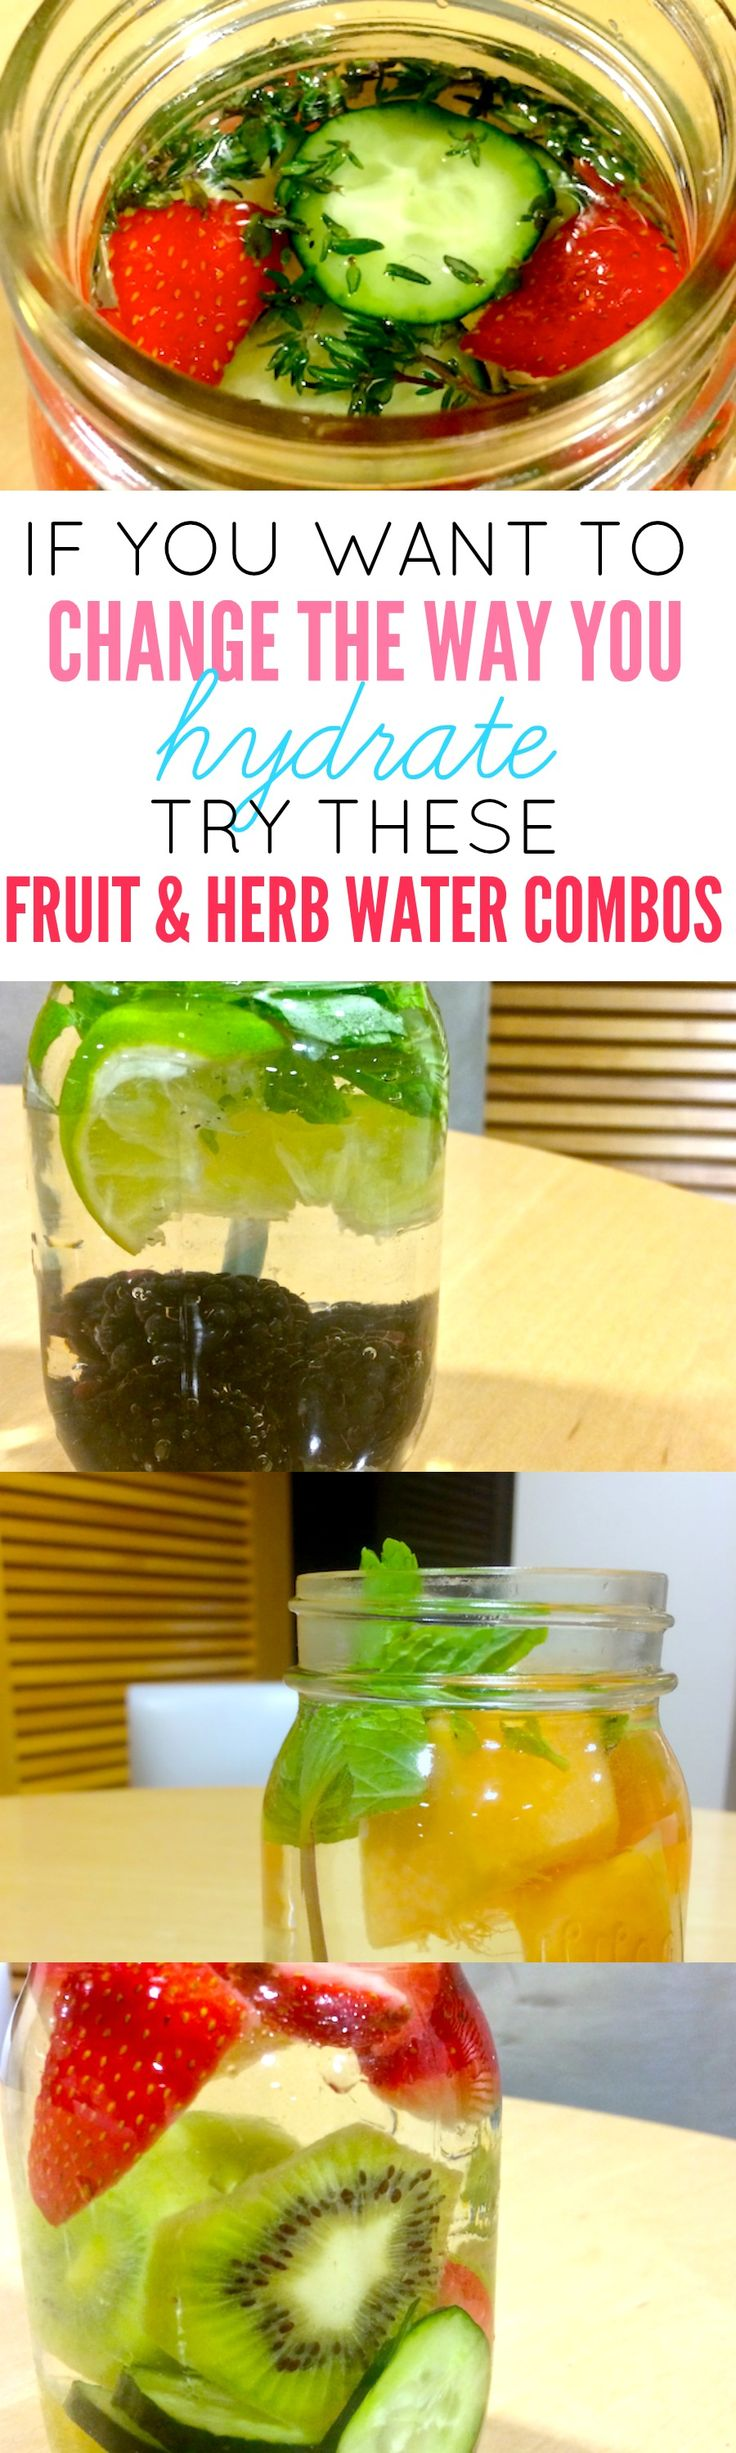 Hydrate yourself smartly! :) #vitaminwater #homemade #fruits #hydrate #drinks #healthy